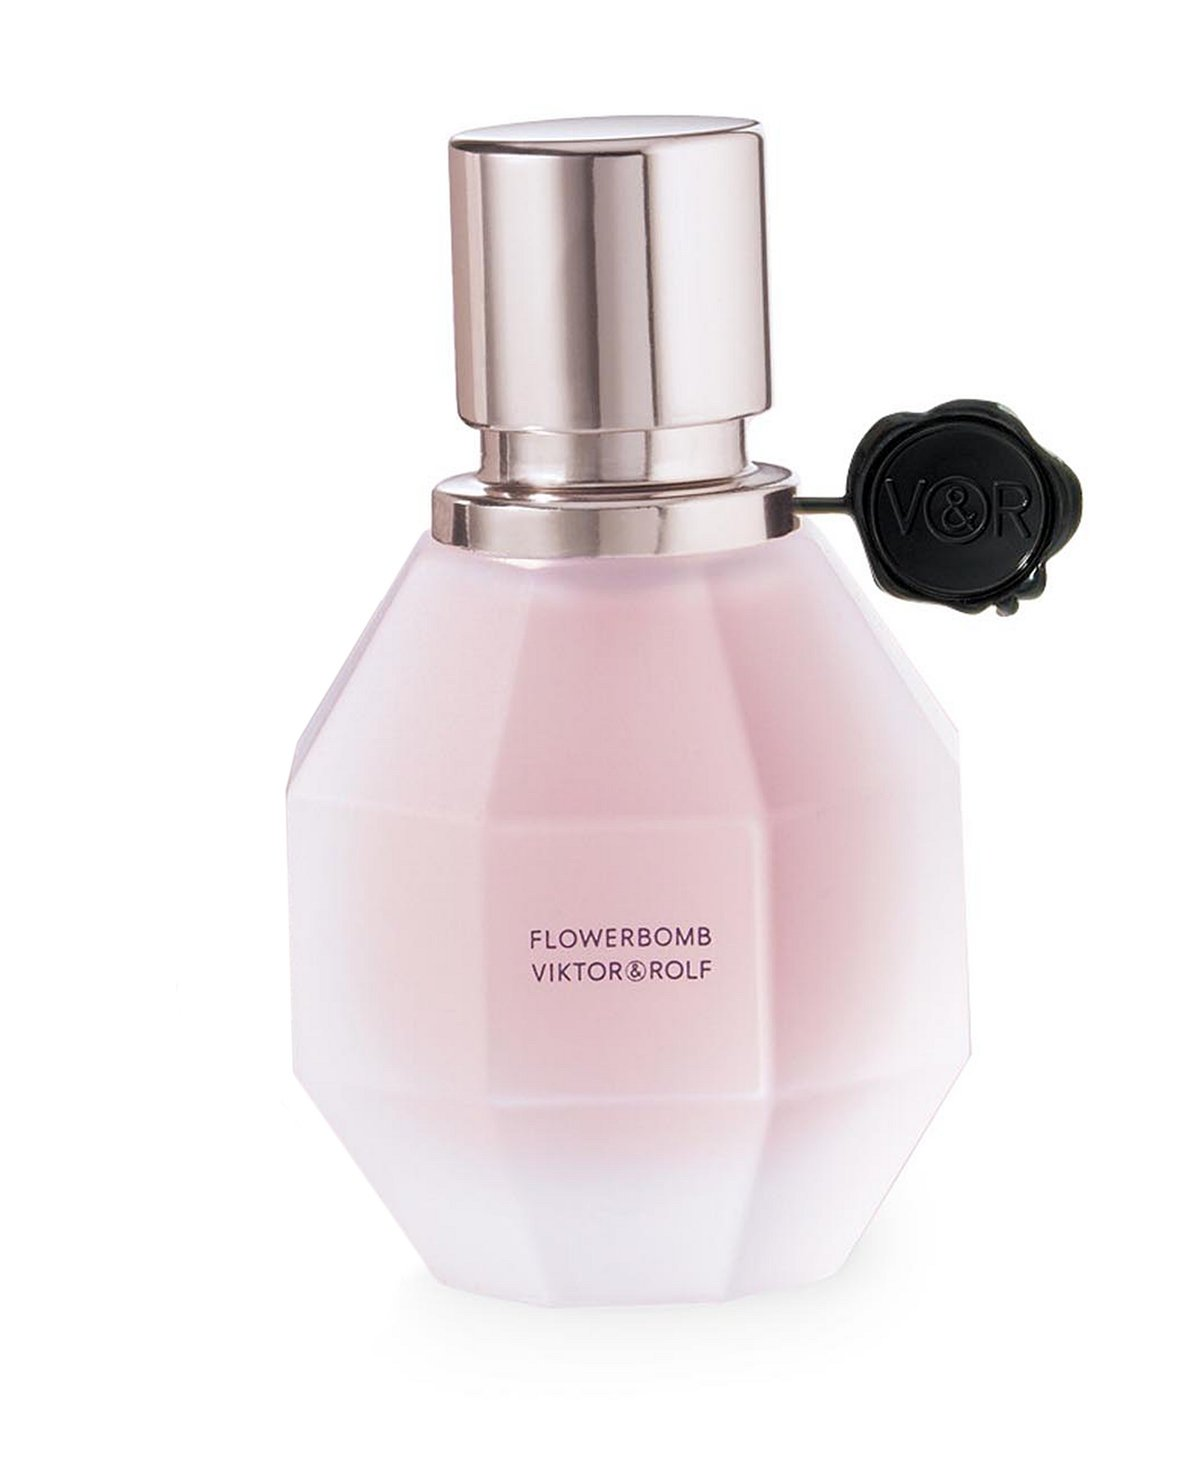 Amazon Flowerbomb Perfume By Viktor Rolf Eau De Parfum Spray